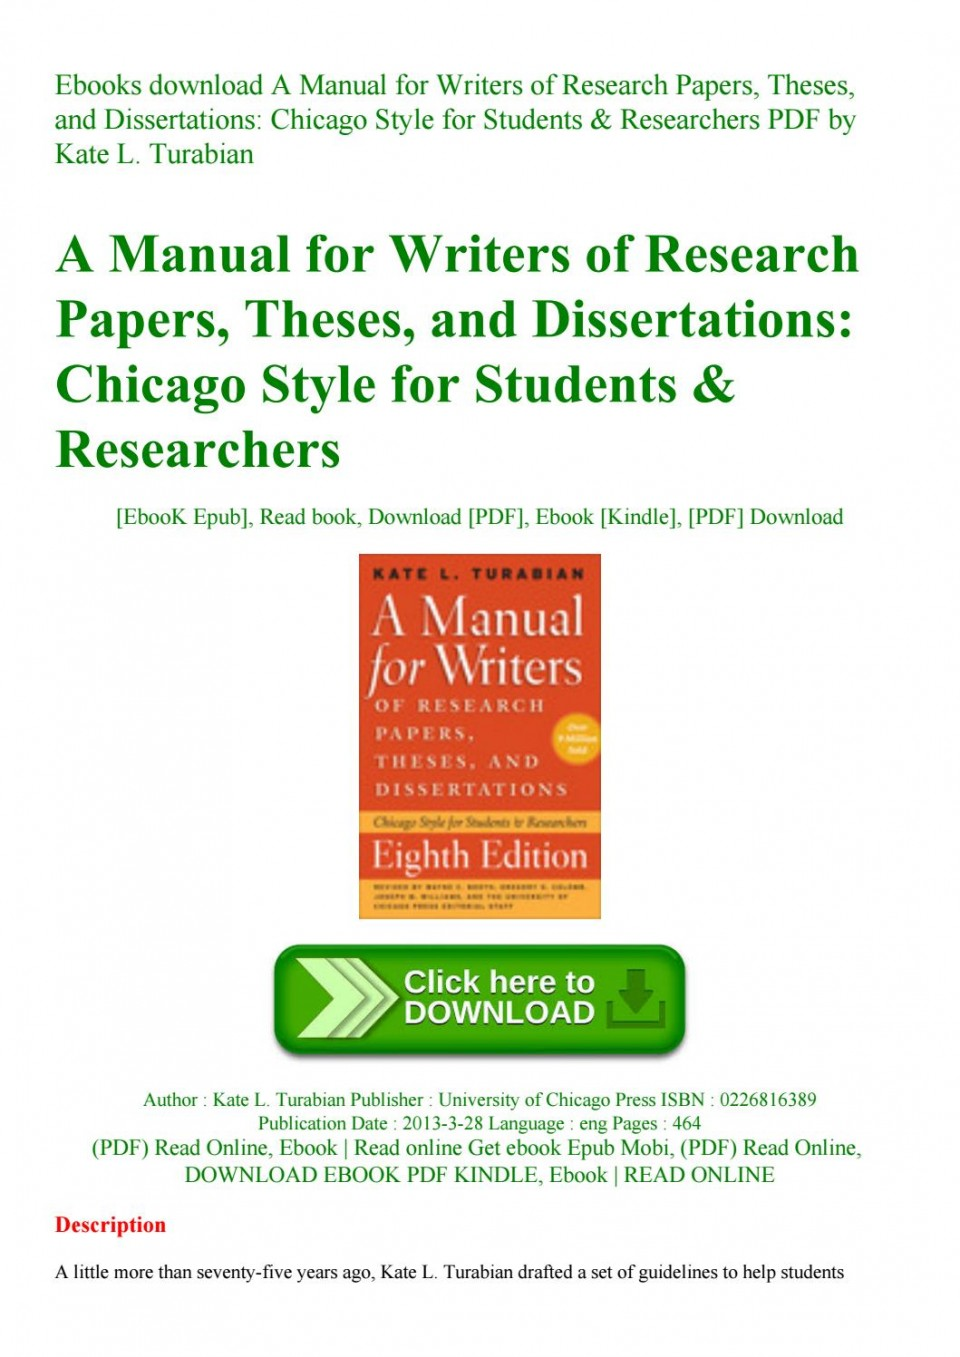 005 Page 1 Manual For Writers Of Researchs Theses And Dissertations Turabian Pdf Wonderful A Research Papers 960